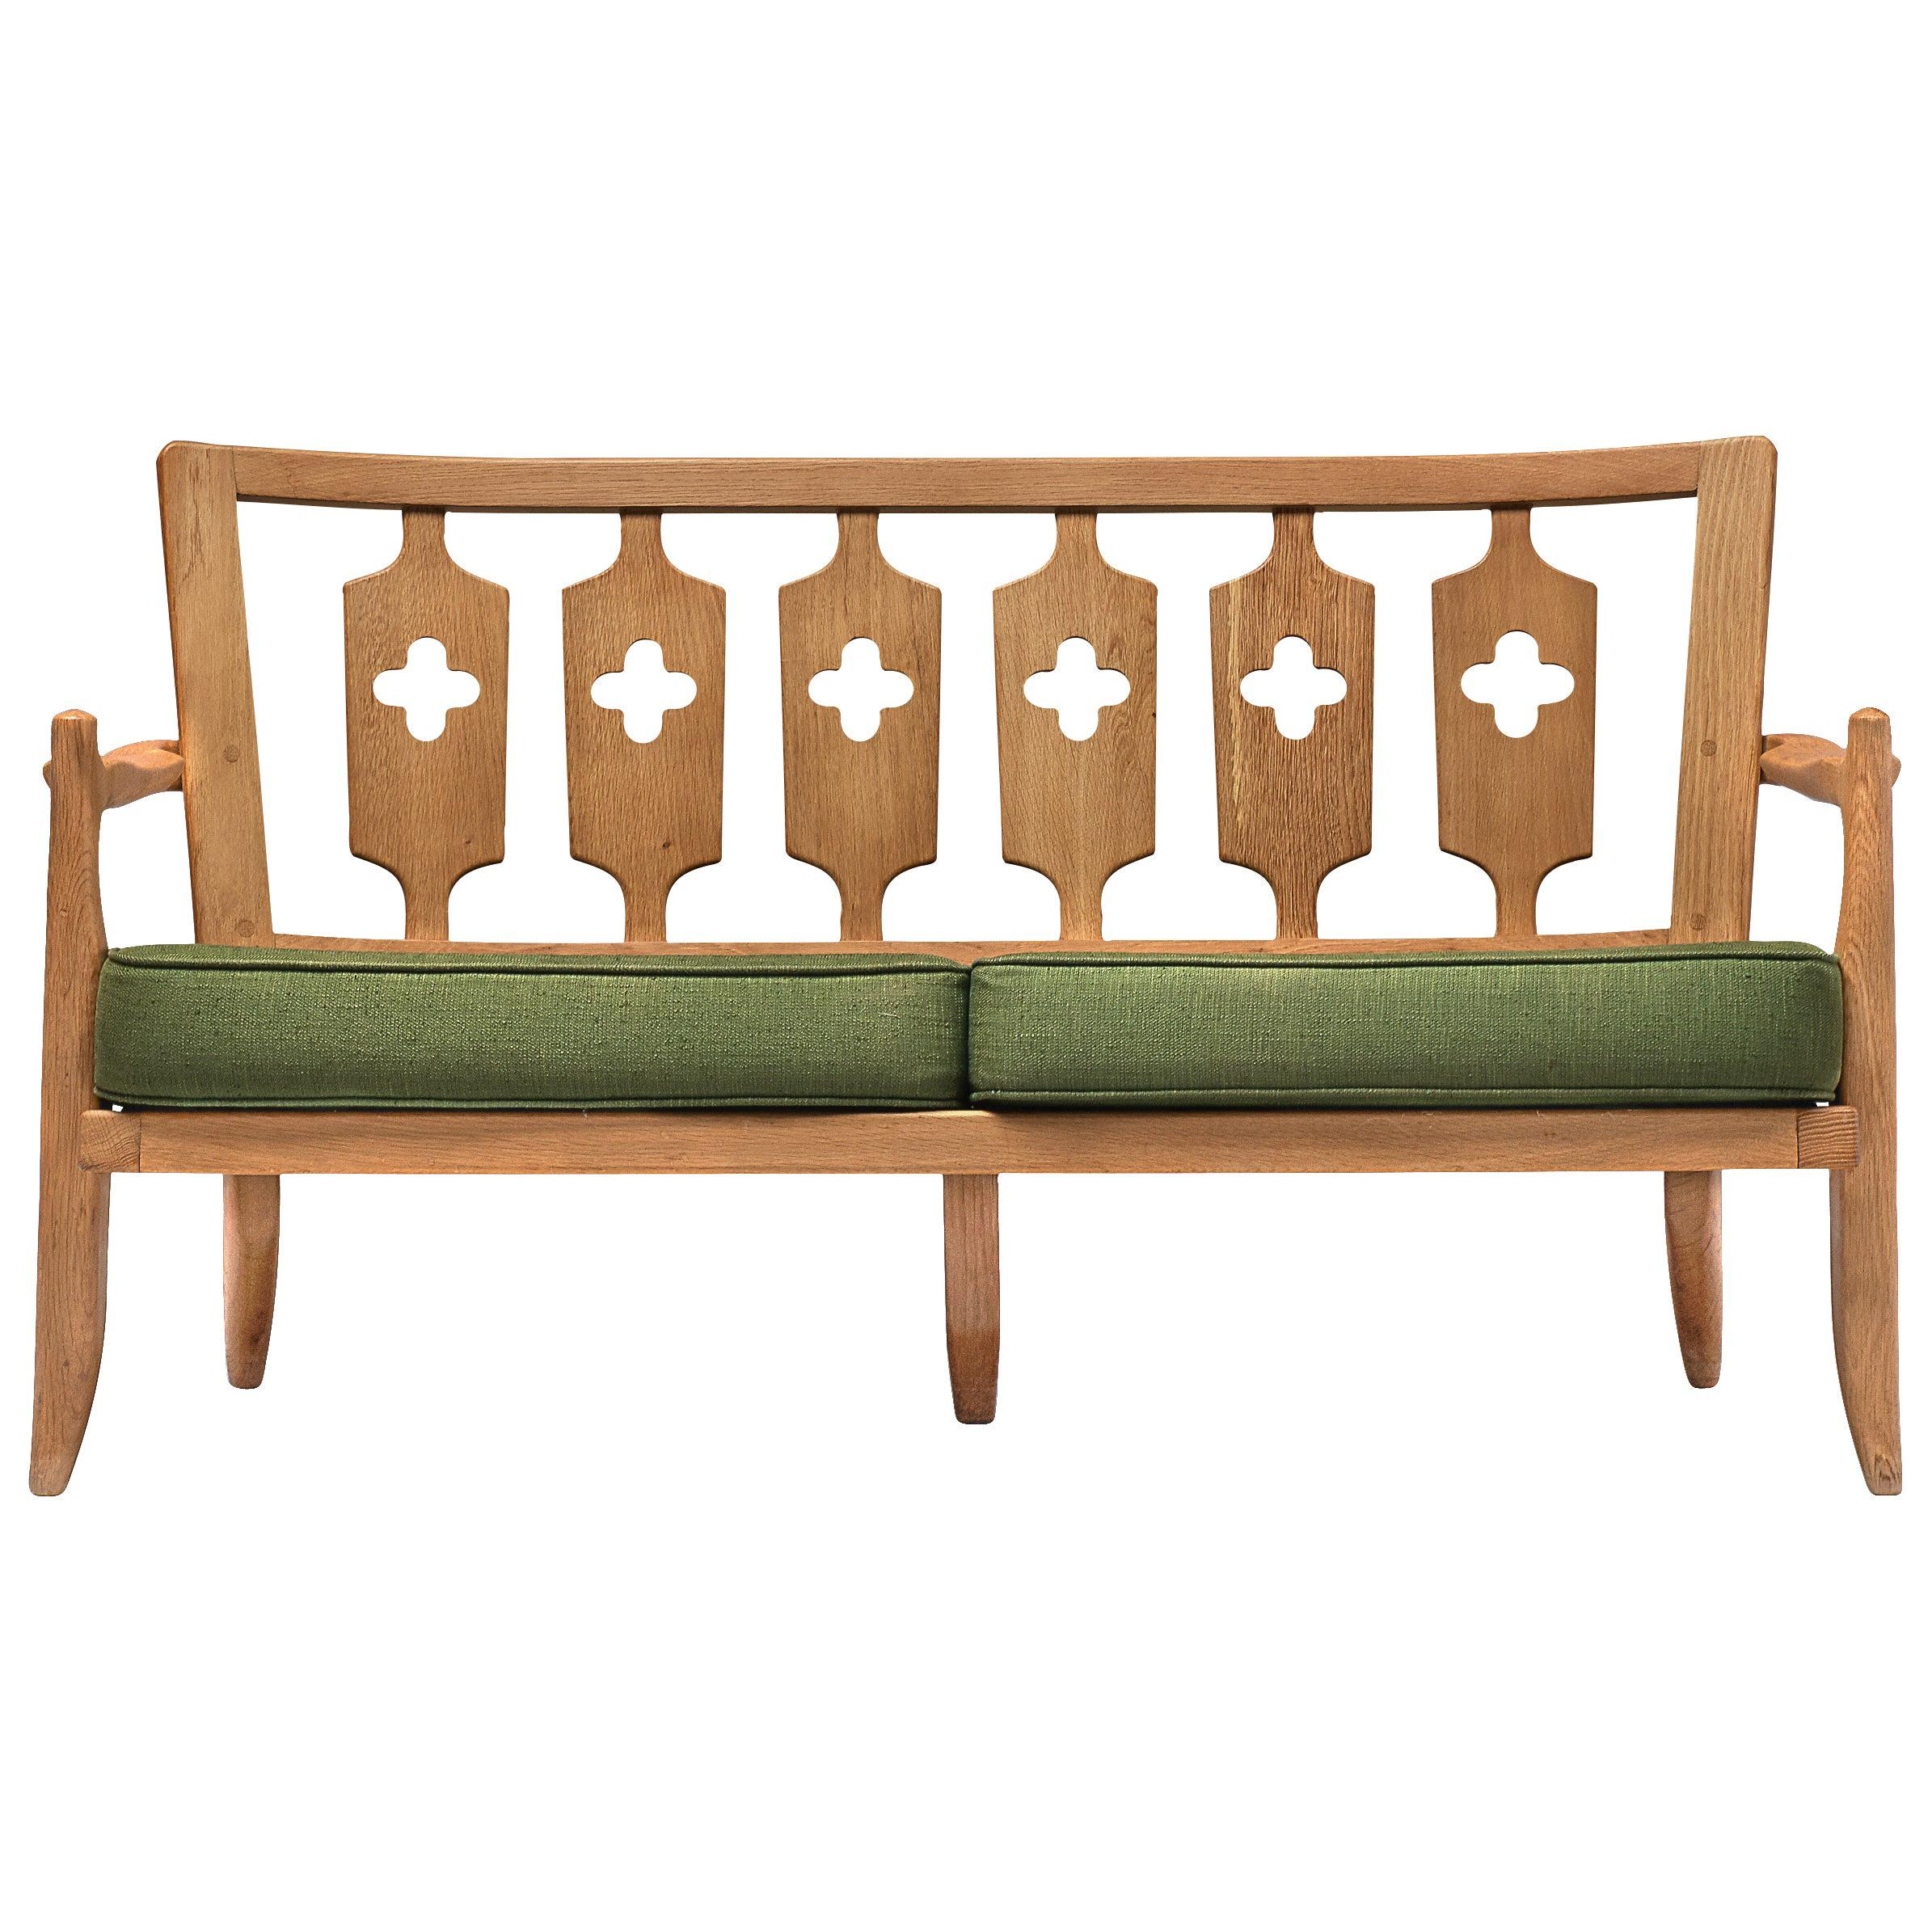 Guillerme et Chambron Sofa in Moss Green Upholstery